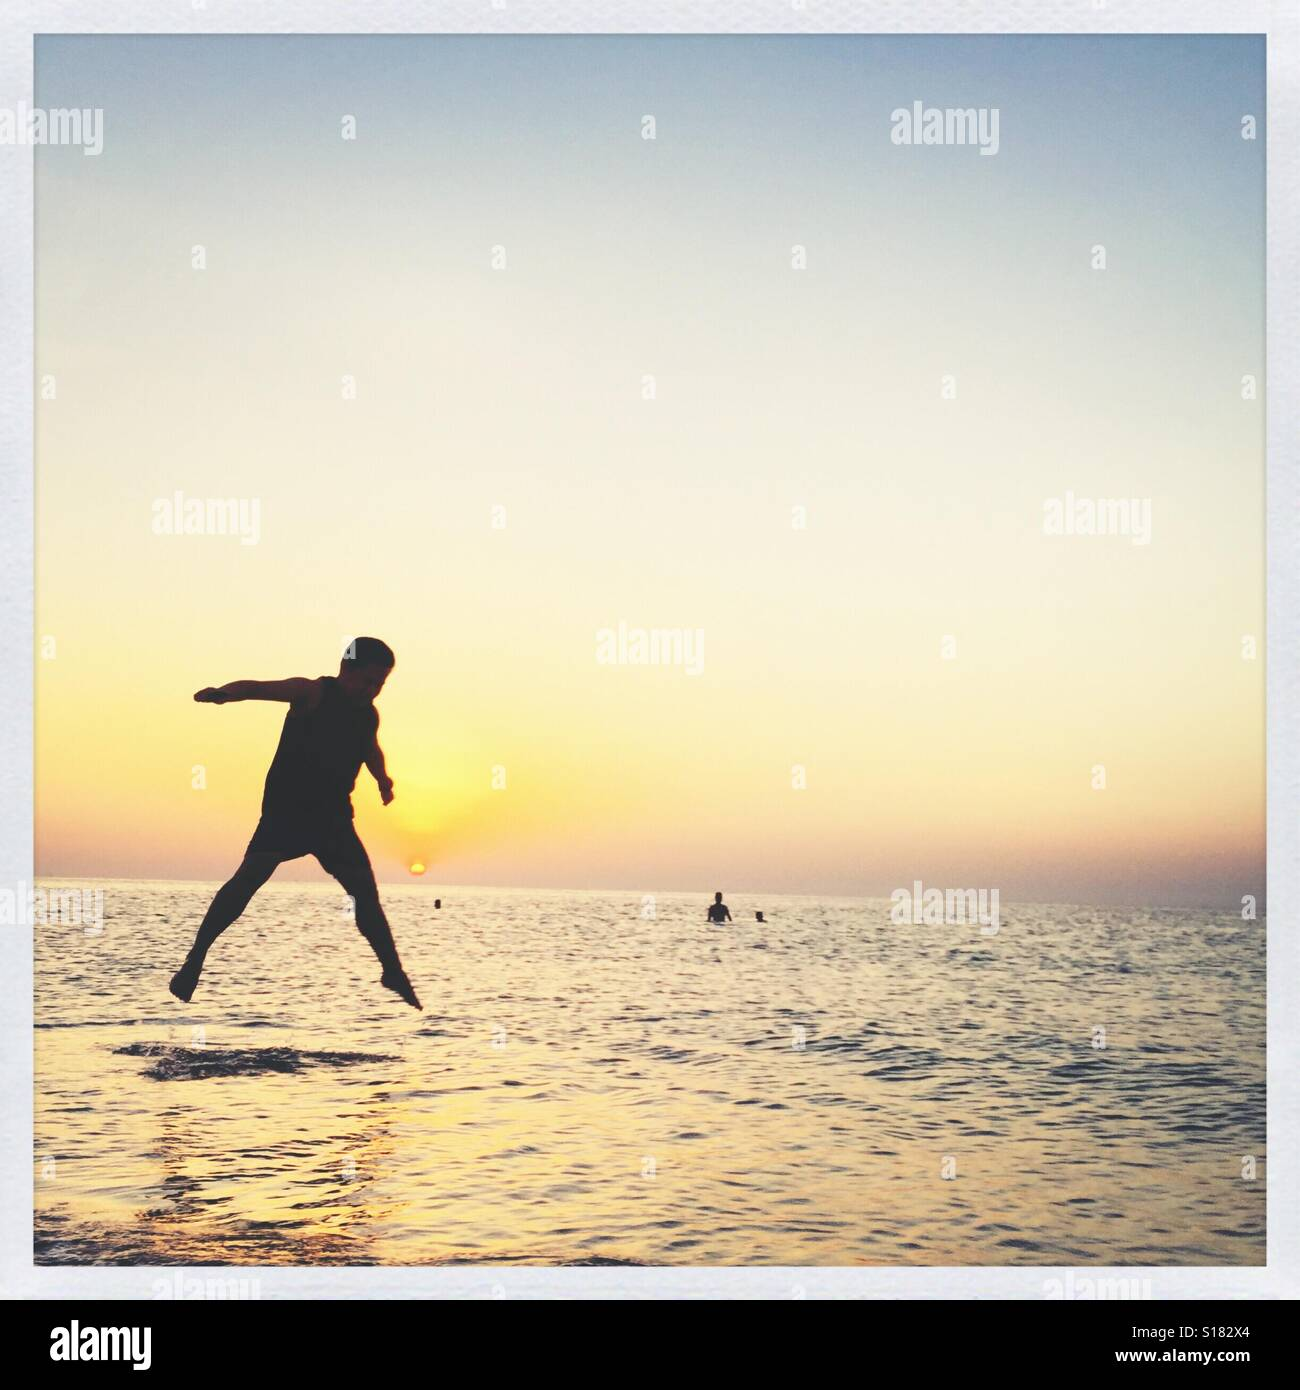 A guy jumping - Stock Image